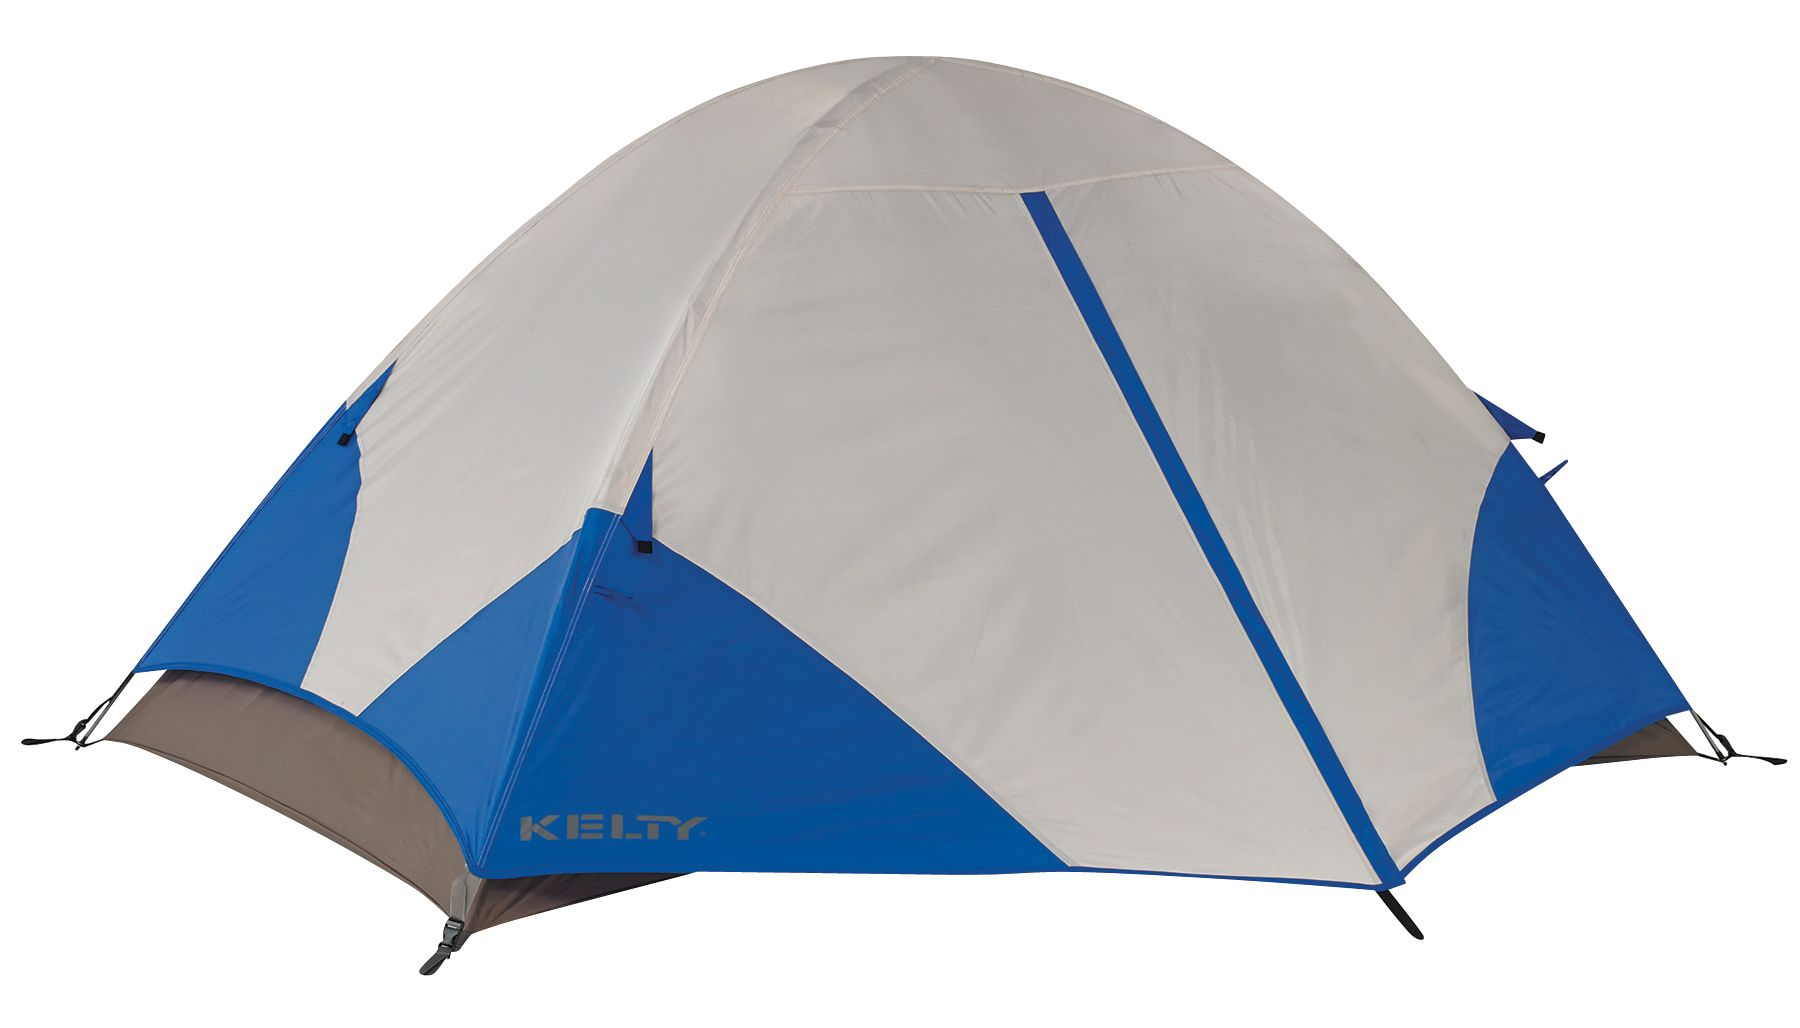 Product Image · Kelty Tempest 2 Person Tent  sc 1 st  DICKu0027S Sporting Goods & Tents for Sale | DICKu0027S Sporting Goods